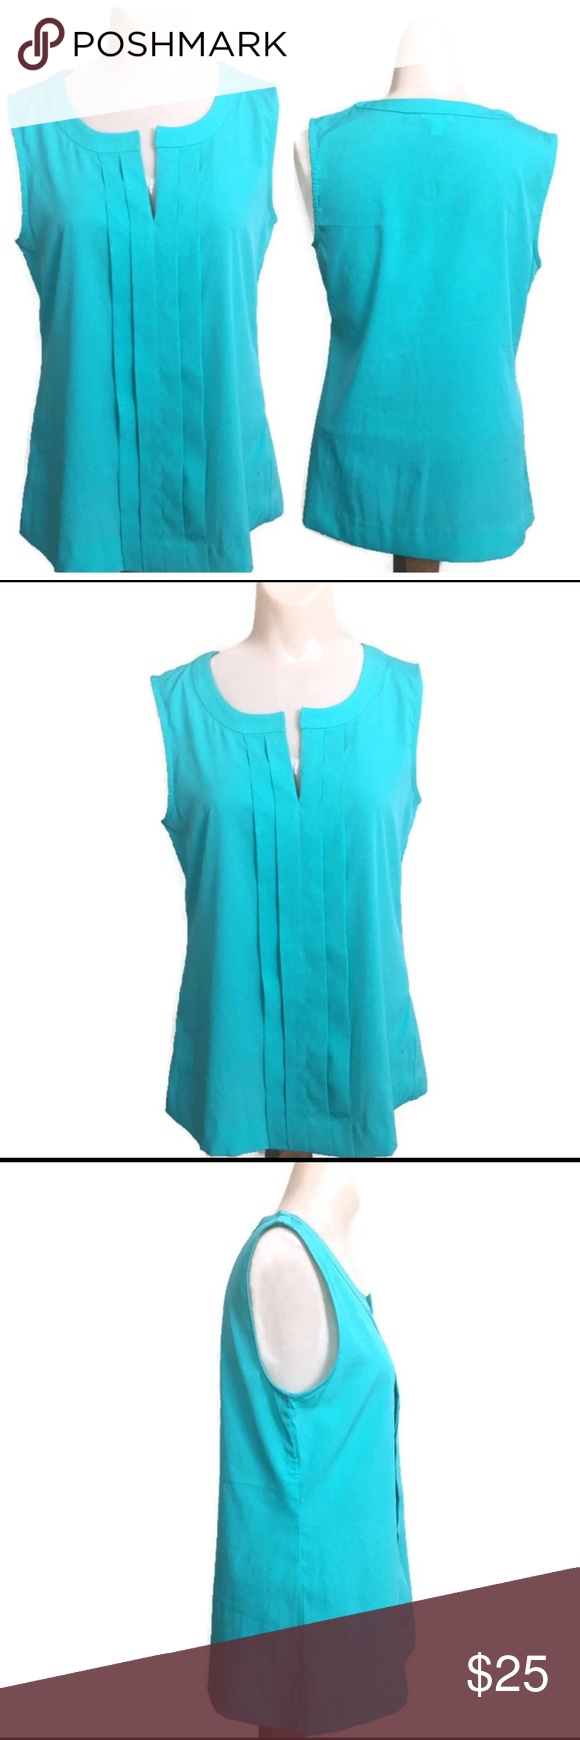 Calvin Klein Teal Pleated tank top size XS/TP Slightly used, like new. Neckline is boat shape but with a V slit. Pleated design at the front. The fabric is a little bit shiny . We promise to ship as soon as we can. We offer bundle shipping. We store our products in a smoke free home.gwbag250b2. Calvin Klein Tops Tank Tops